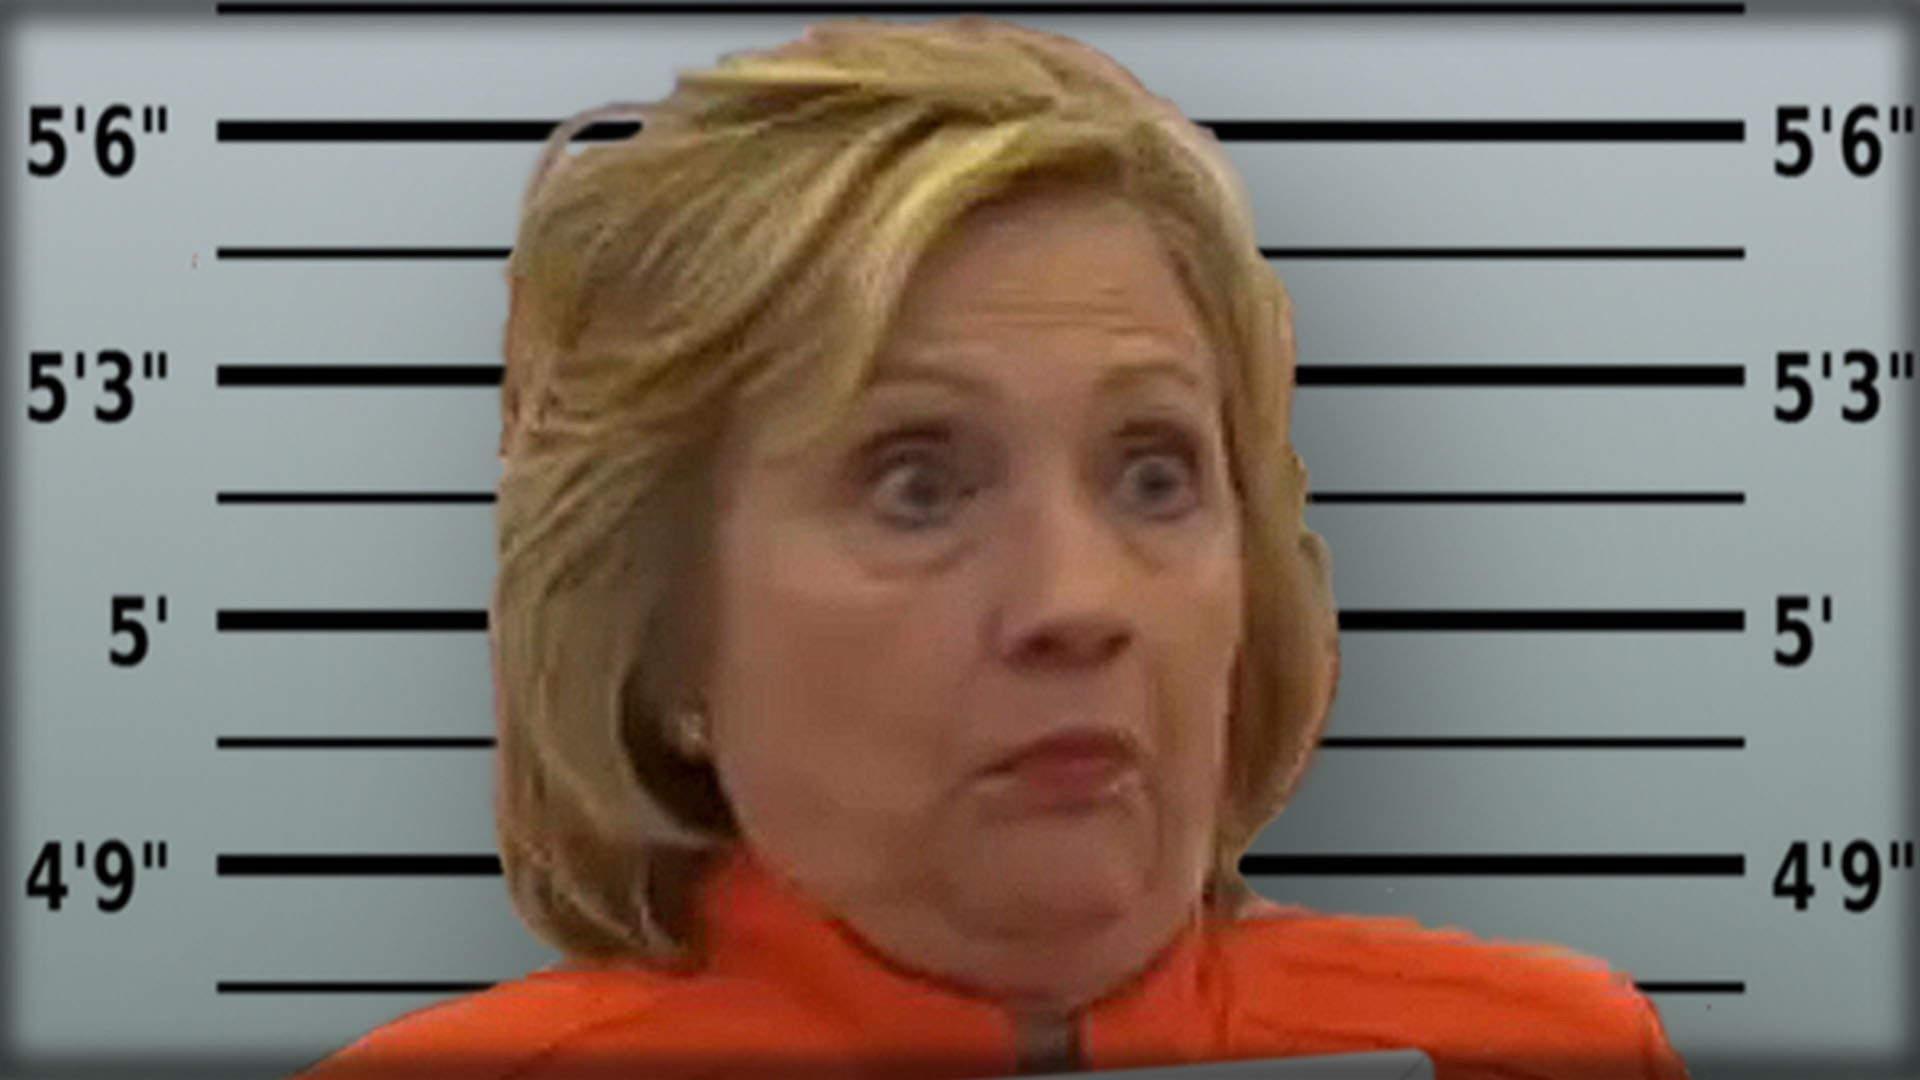 BREAKING: HILLARY CLINTON WILL BE IN JAIL BY TOMORROW IF RAND PAUL IS RIGHT  – YouTube